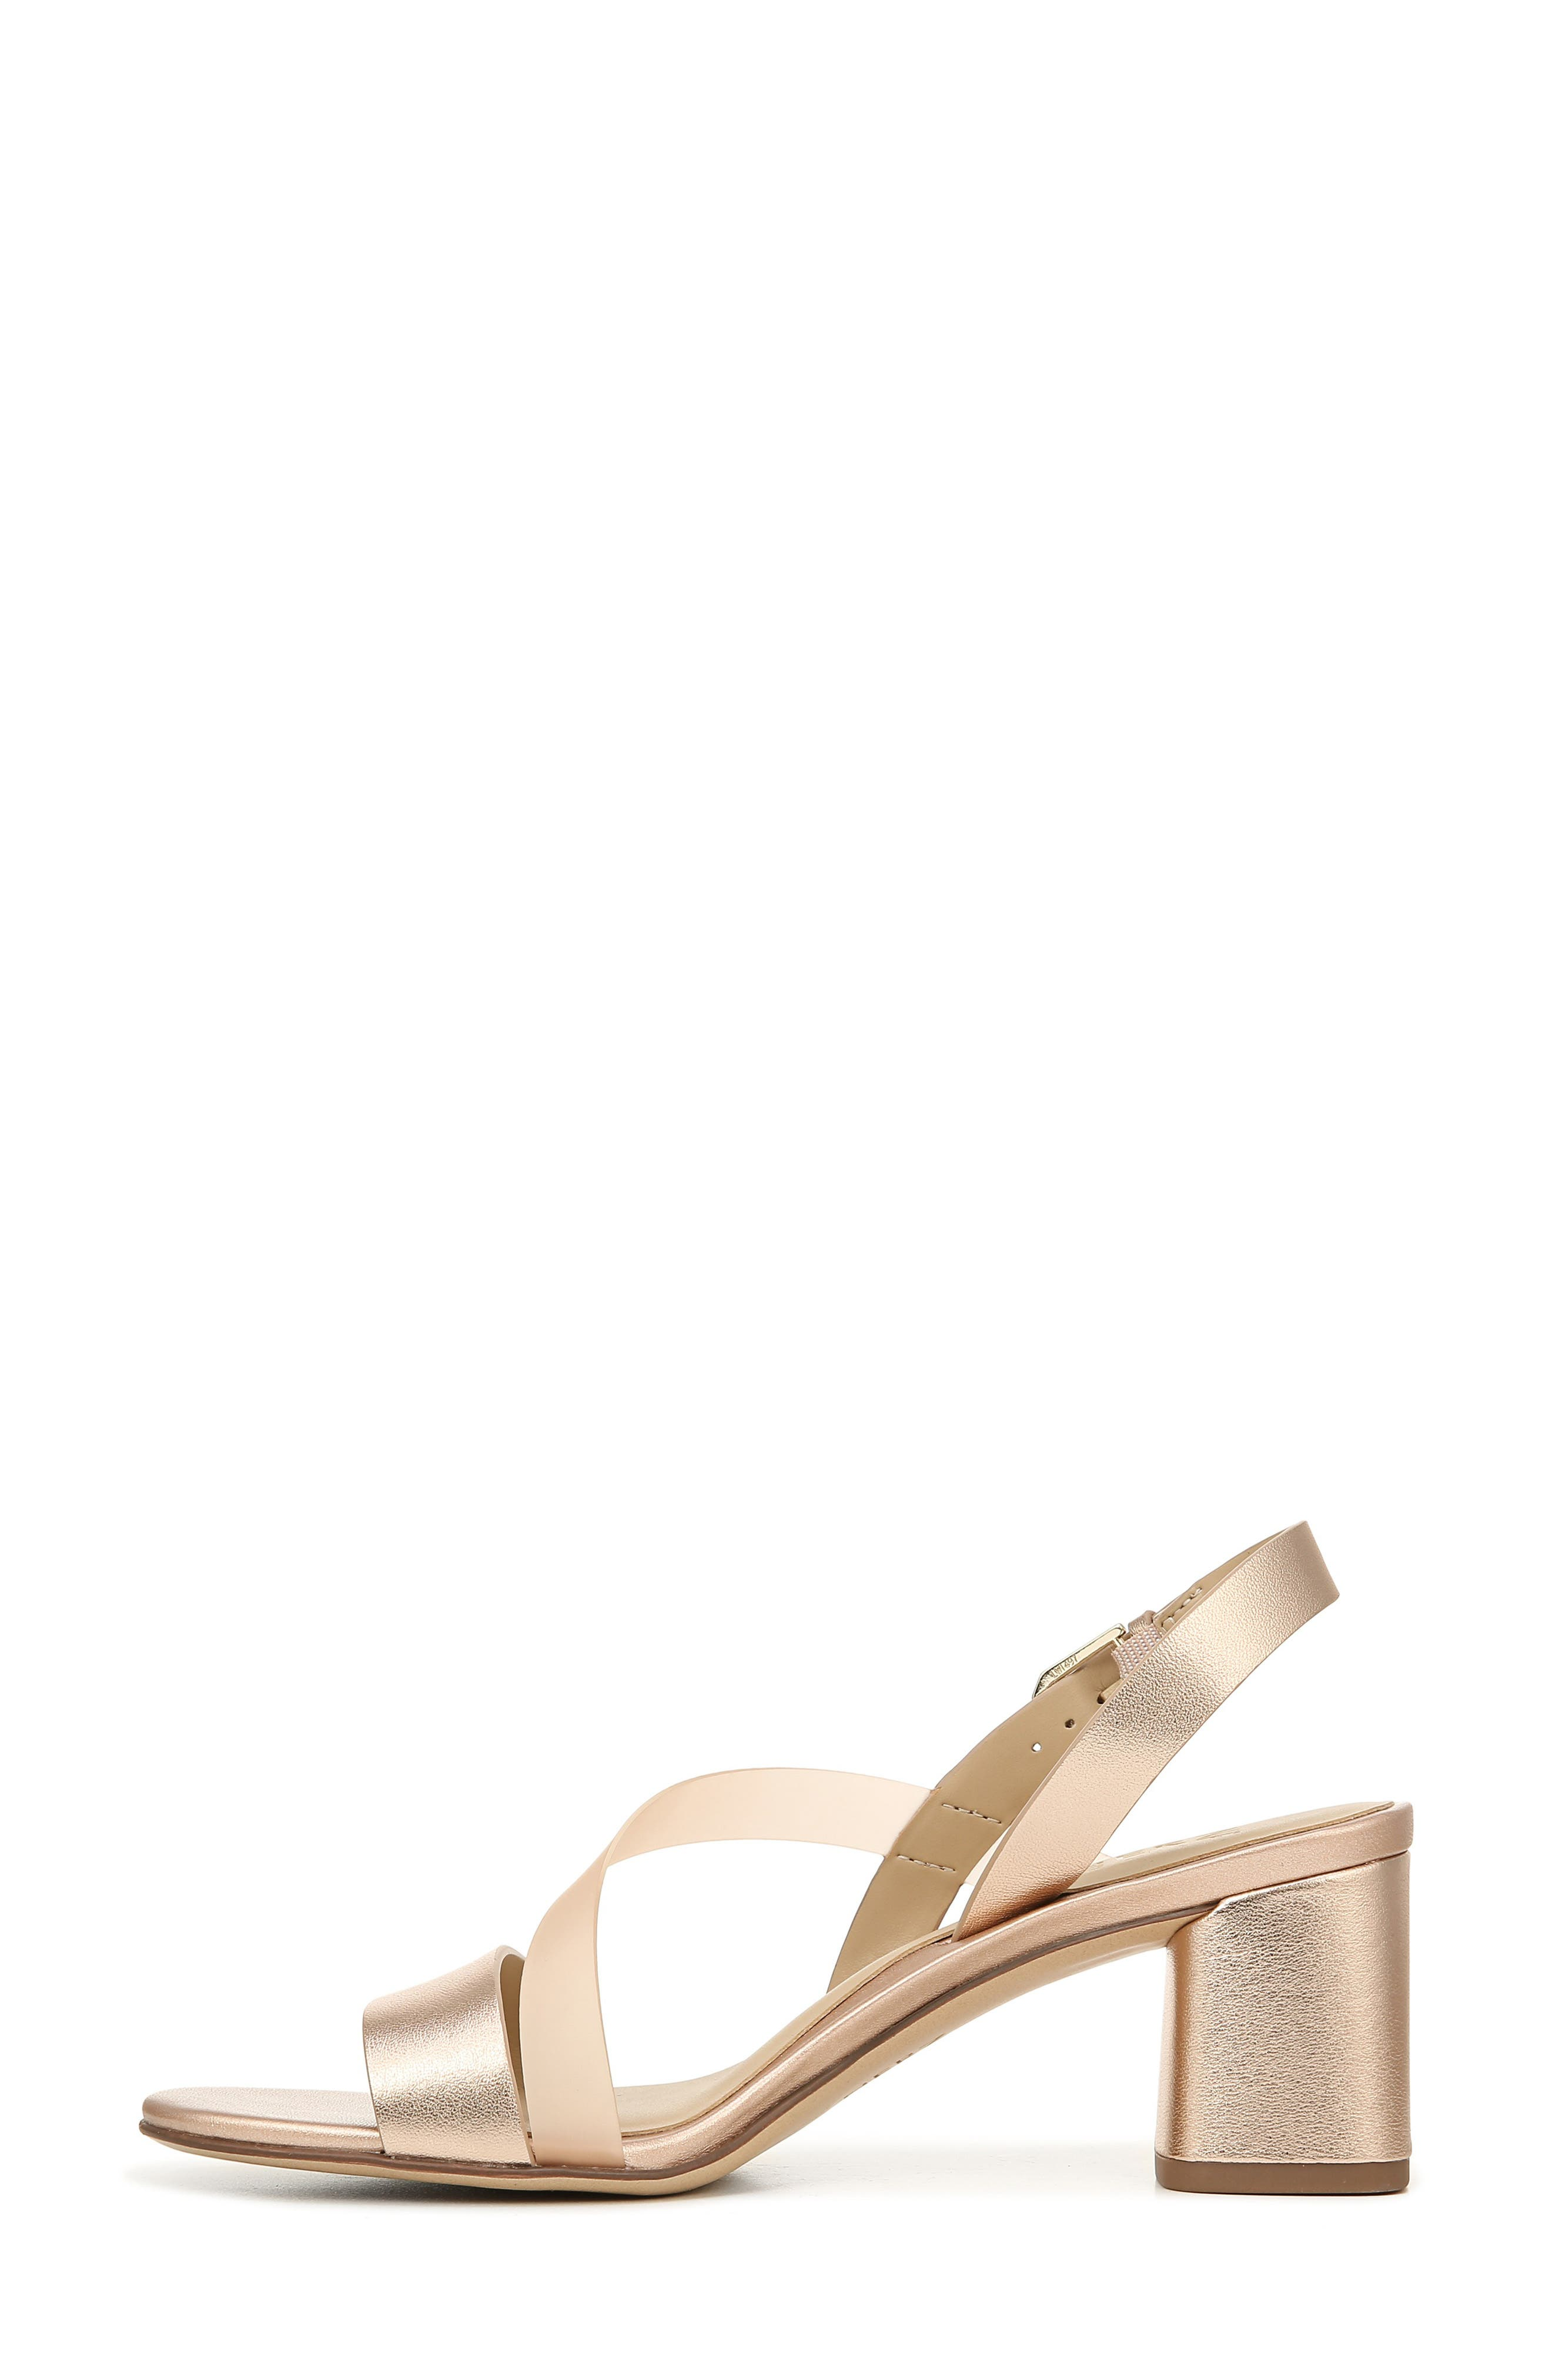 NATURALIZER, Arianna Block Heel Sandal, Alternate thumbnail 9, color, ROSE GOLD LEATHER